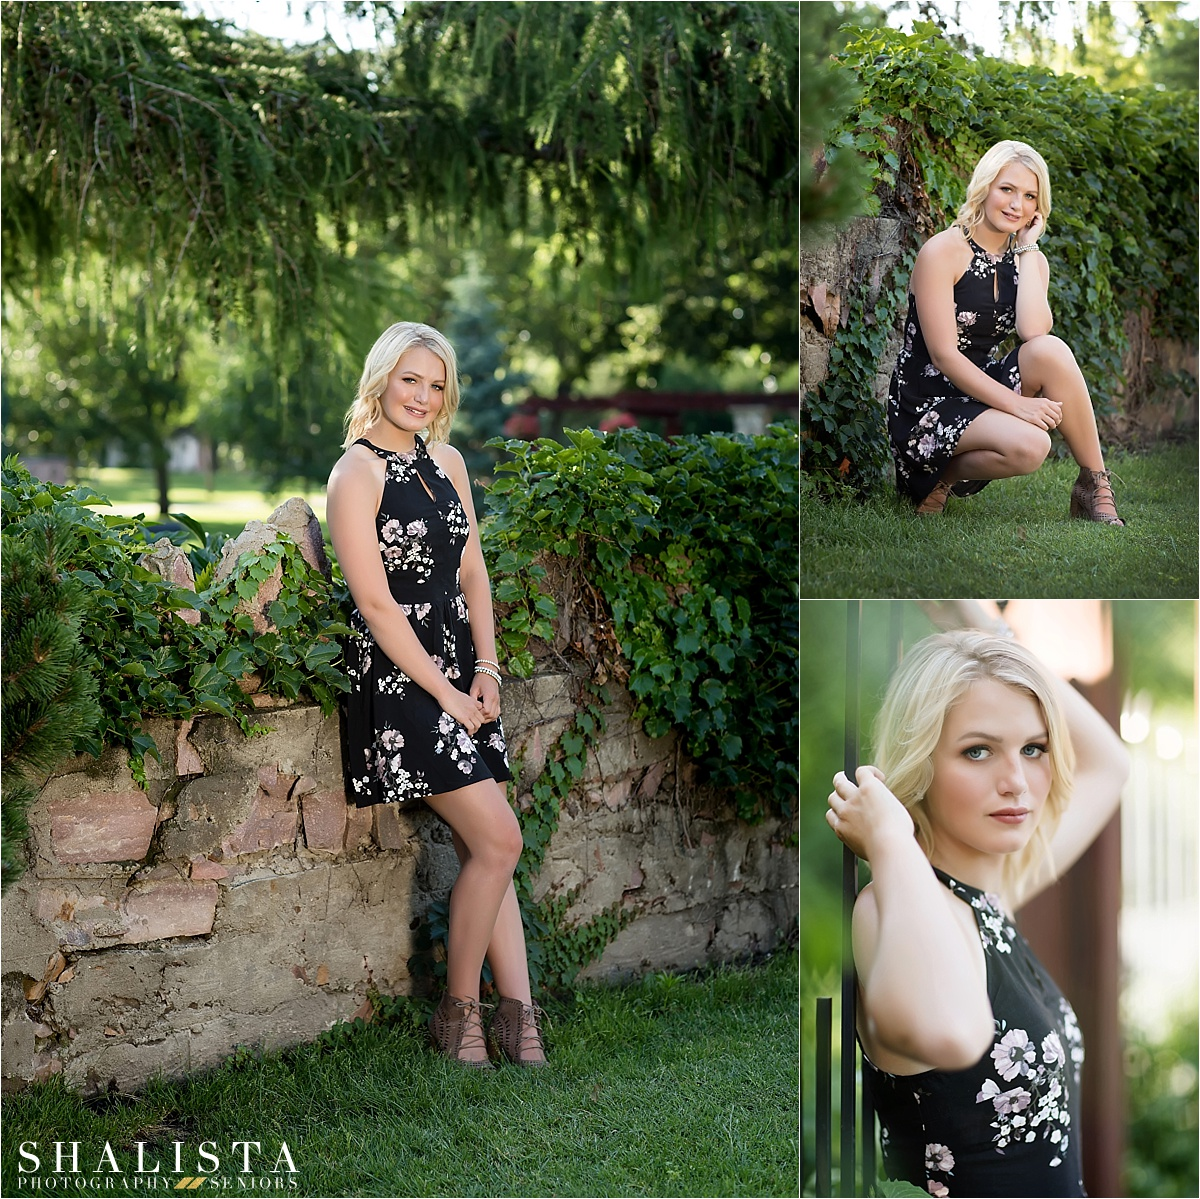 McKennan Park Senior Photos | Shalista Photography